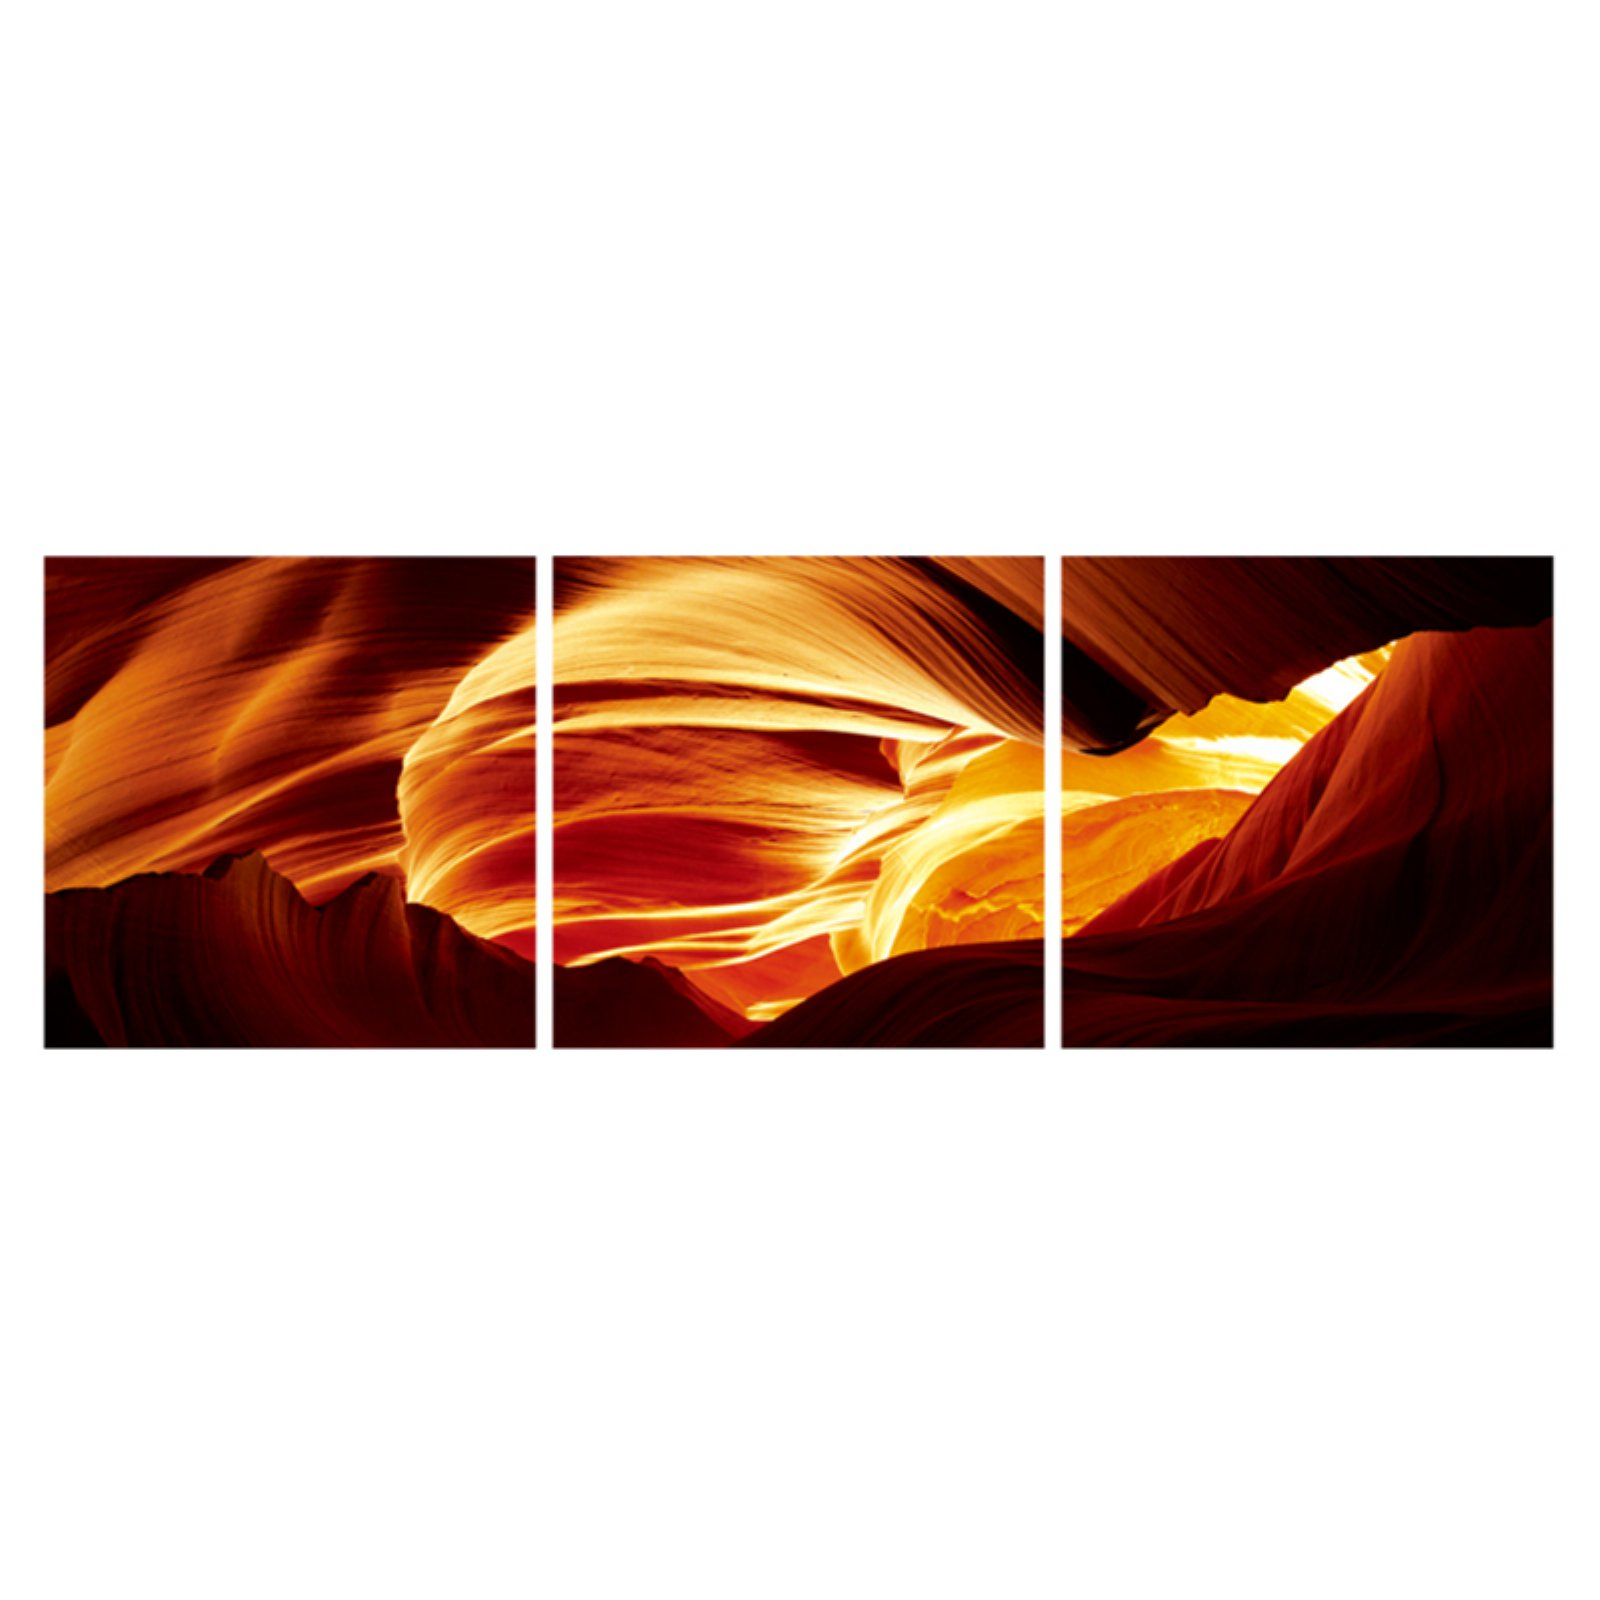 Furinno SeniA Antelope Caves 3-Panel MDF Framed Photography Triptych Print, 48 x 16-in